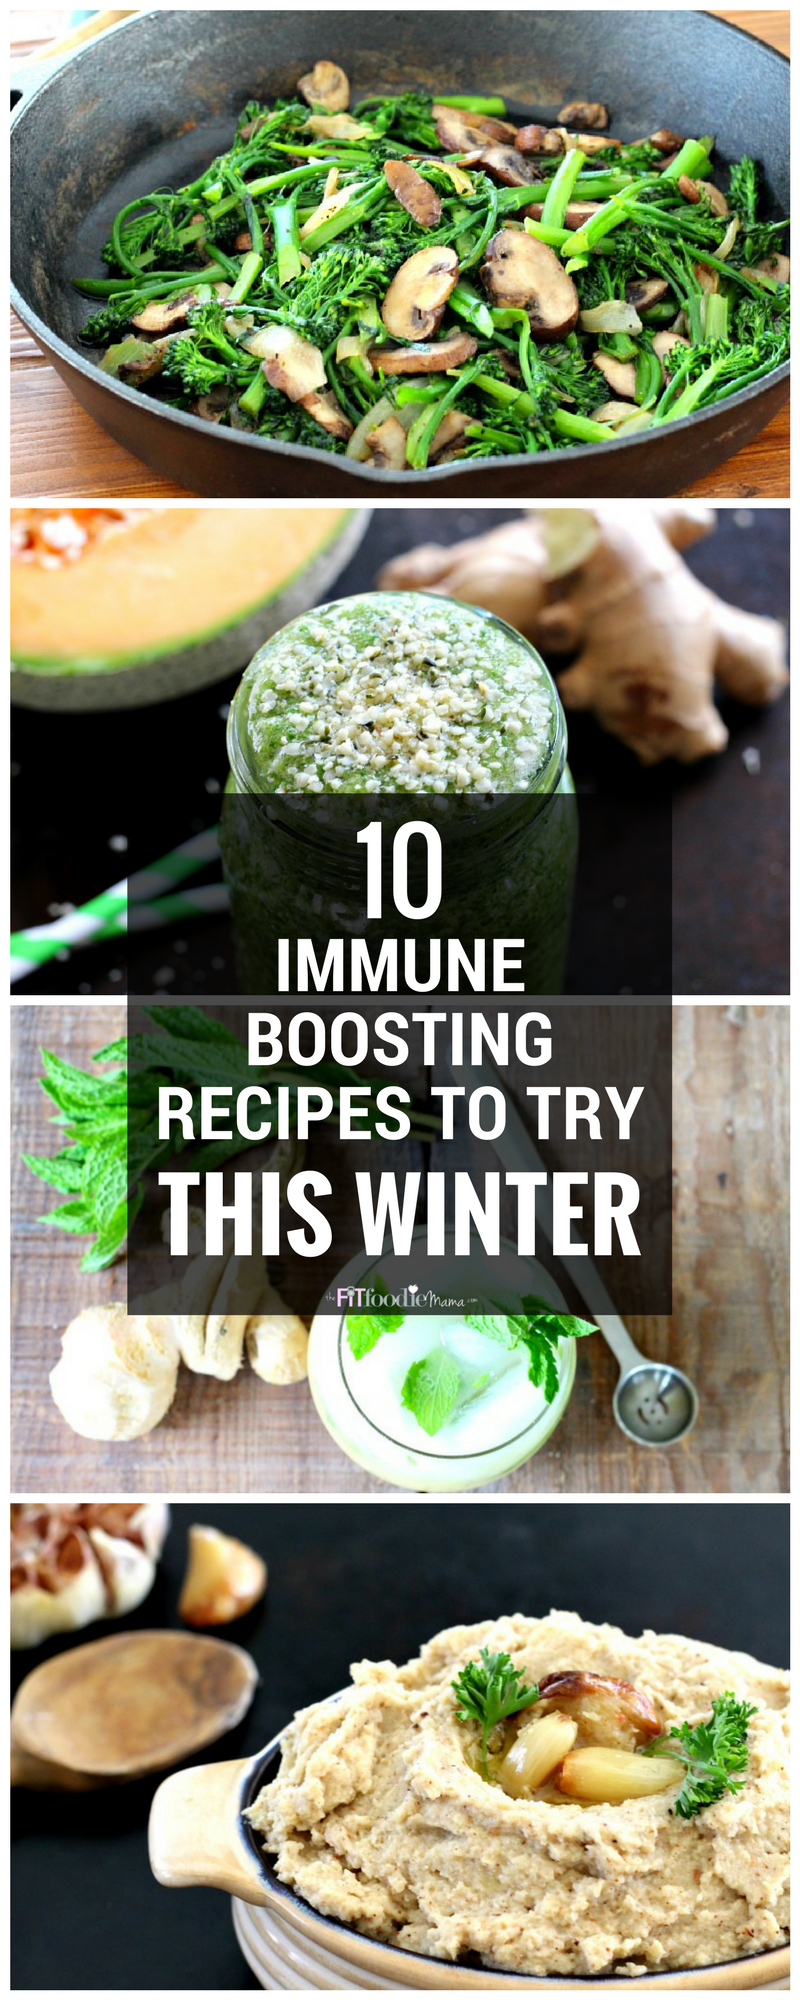 10 Immune Boosting Recipes To Try This Winter - The Fit Foodie Mama